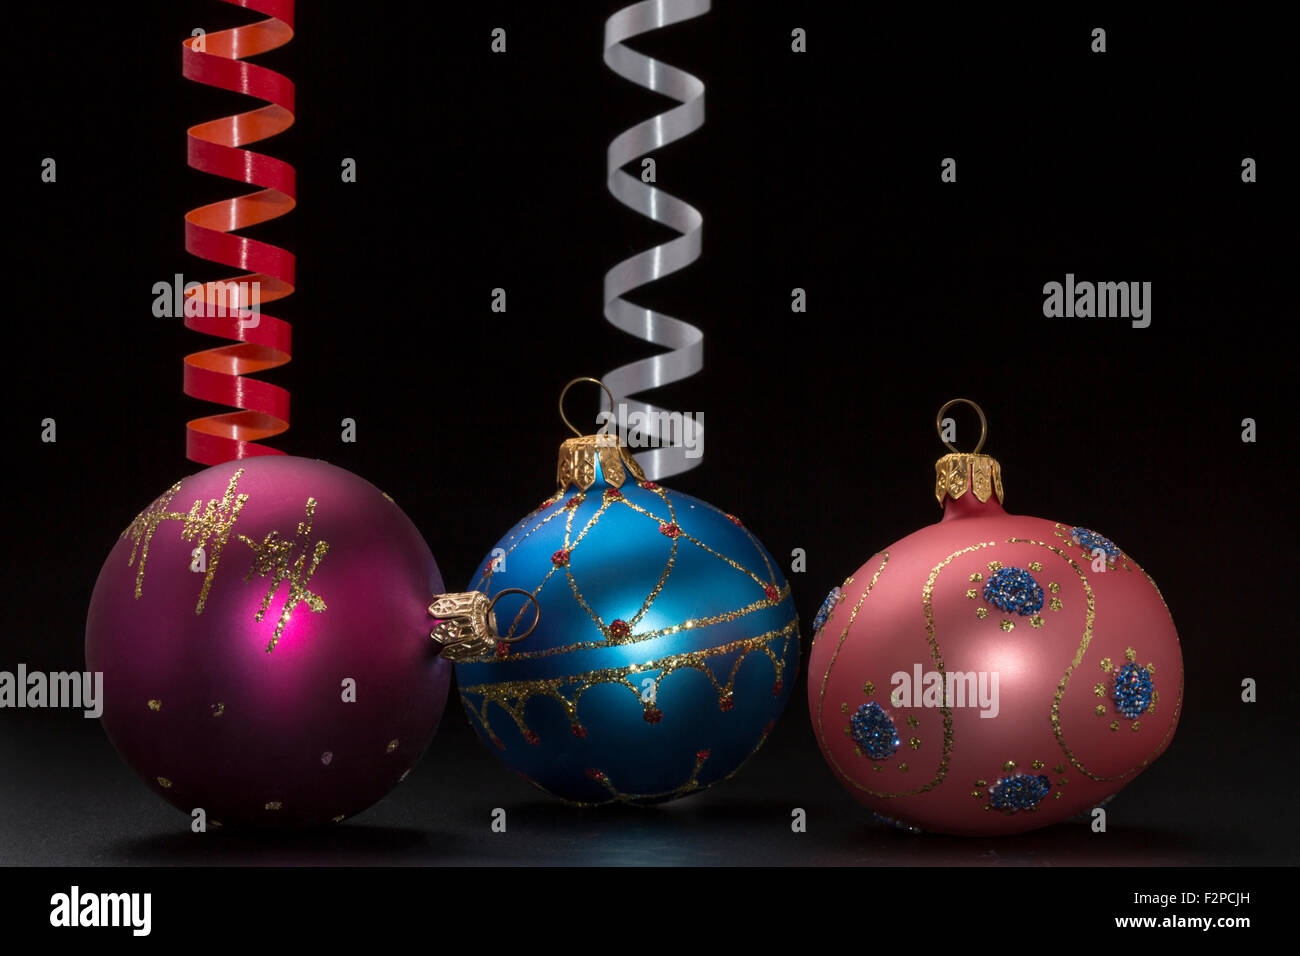 Christmas and newy year decoration with colorful balls and ribbons on black background - Stock Image